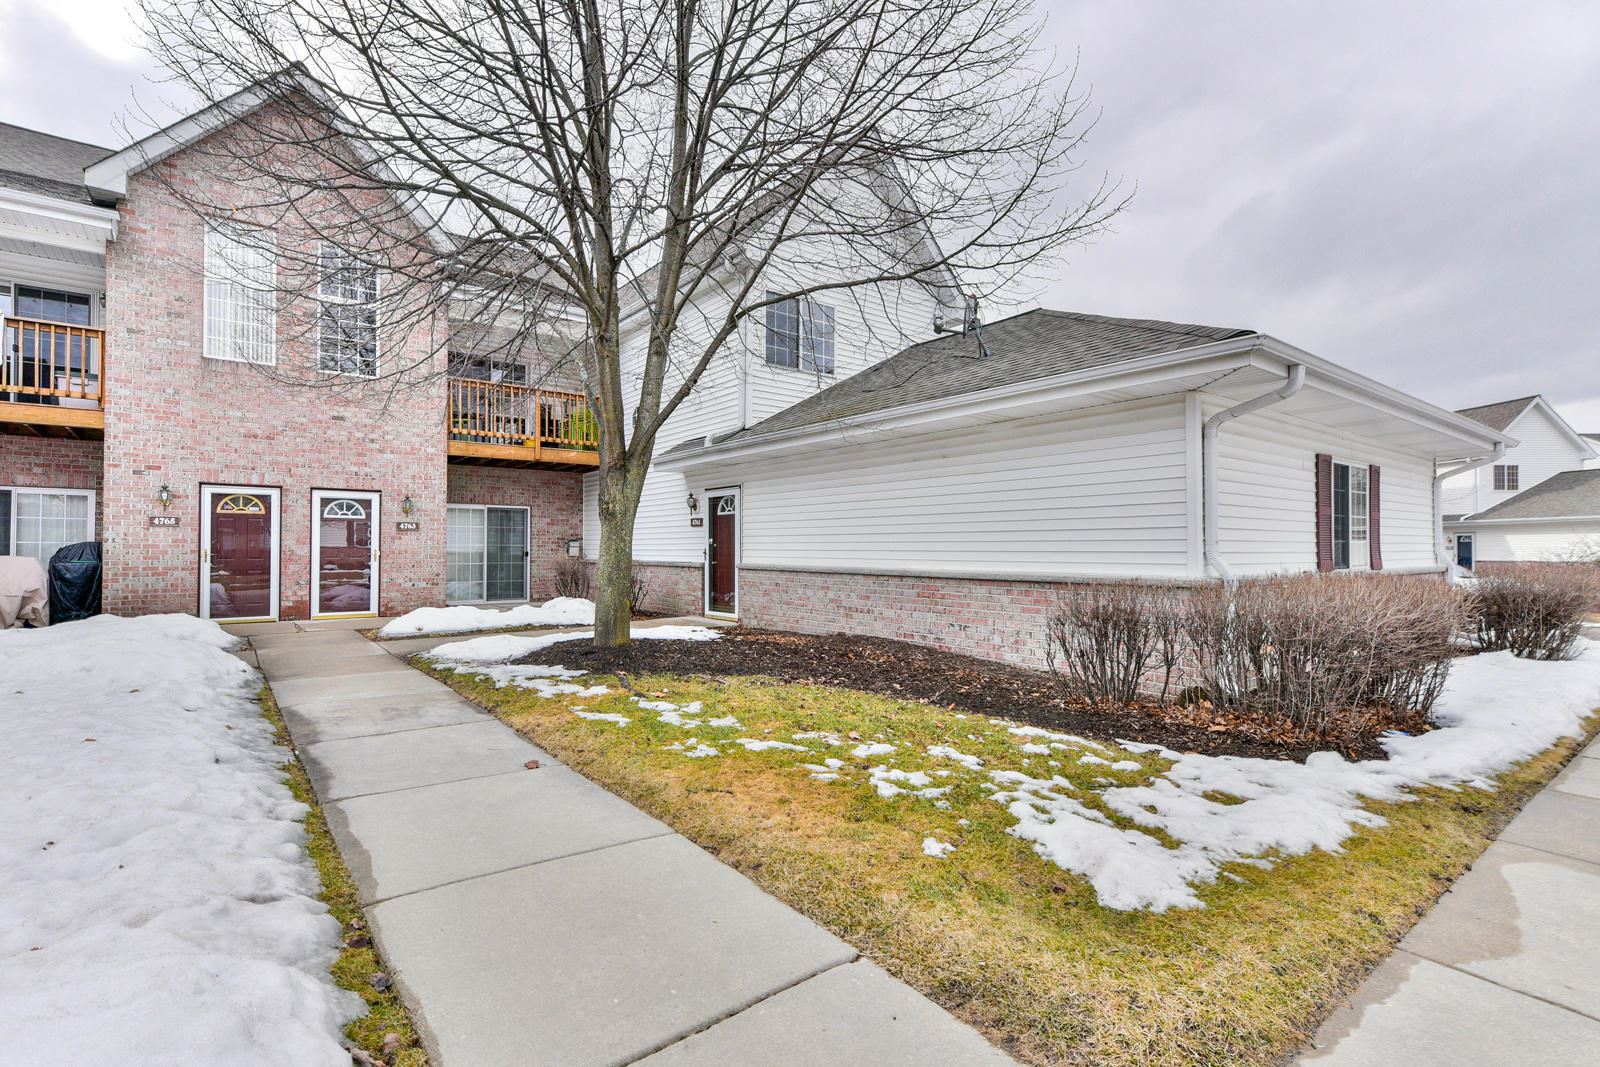 4761 S Forest Point Blvd, New Berlin, WI 53151 - #: 1679910